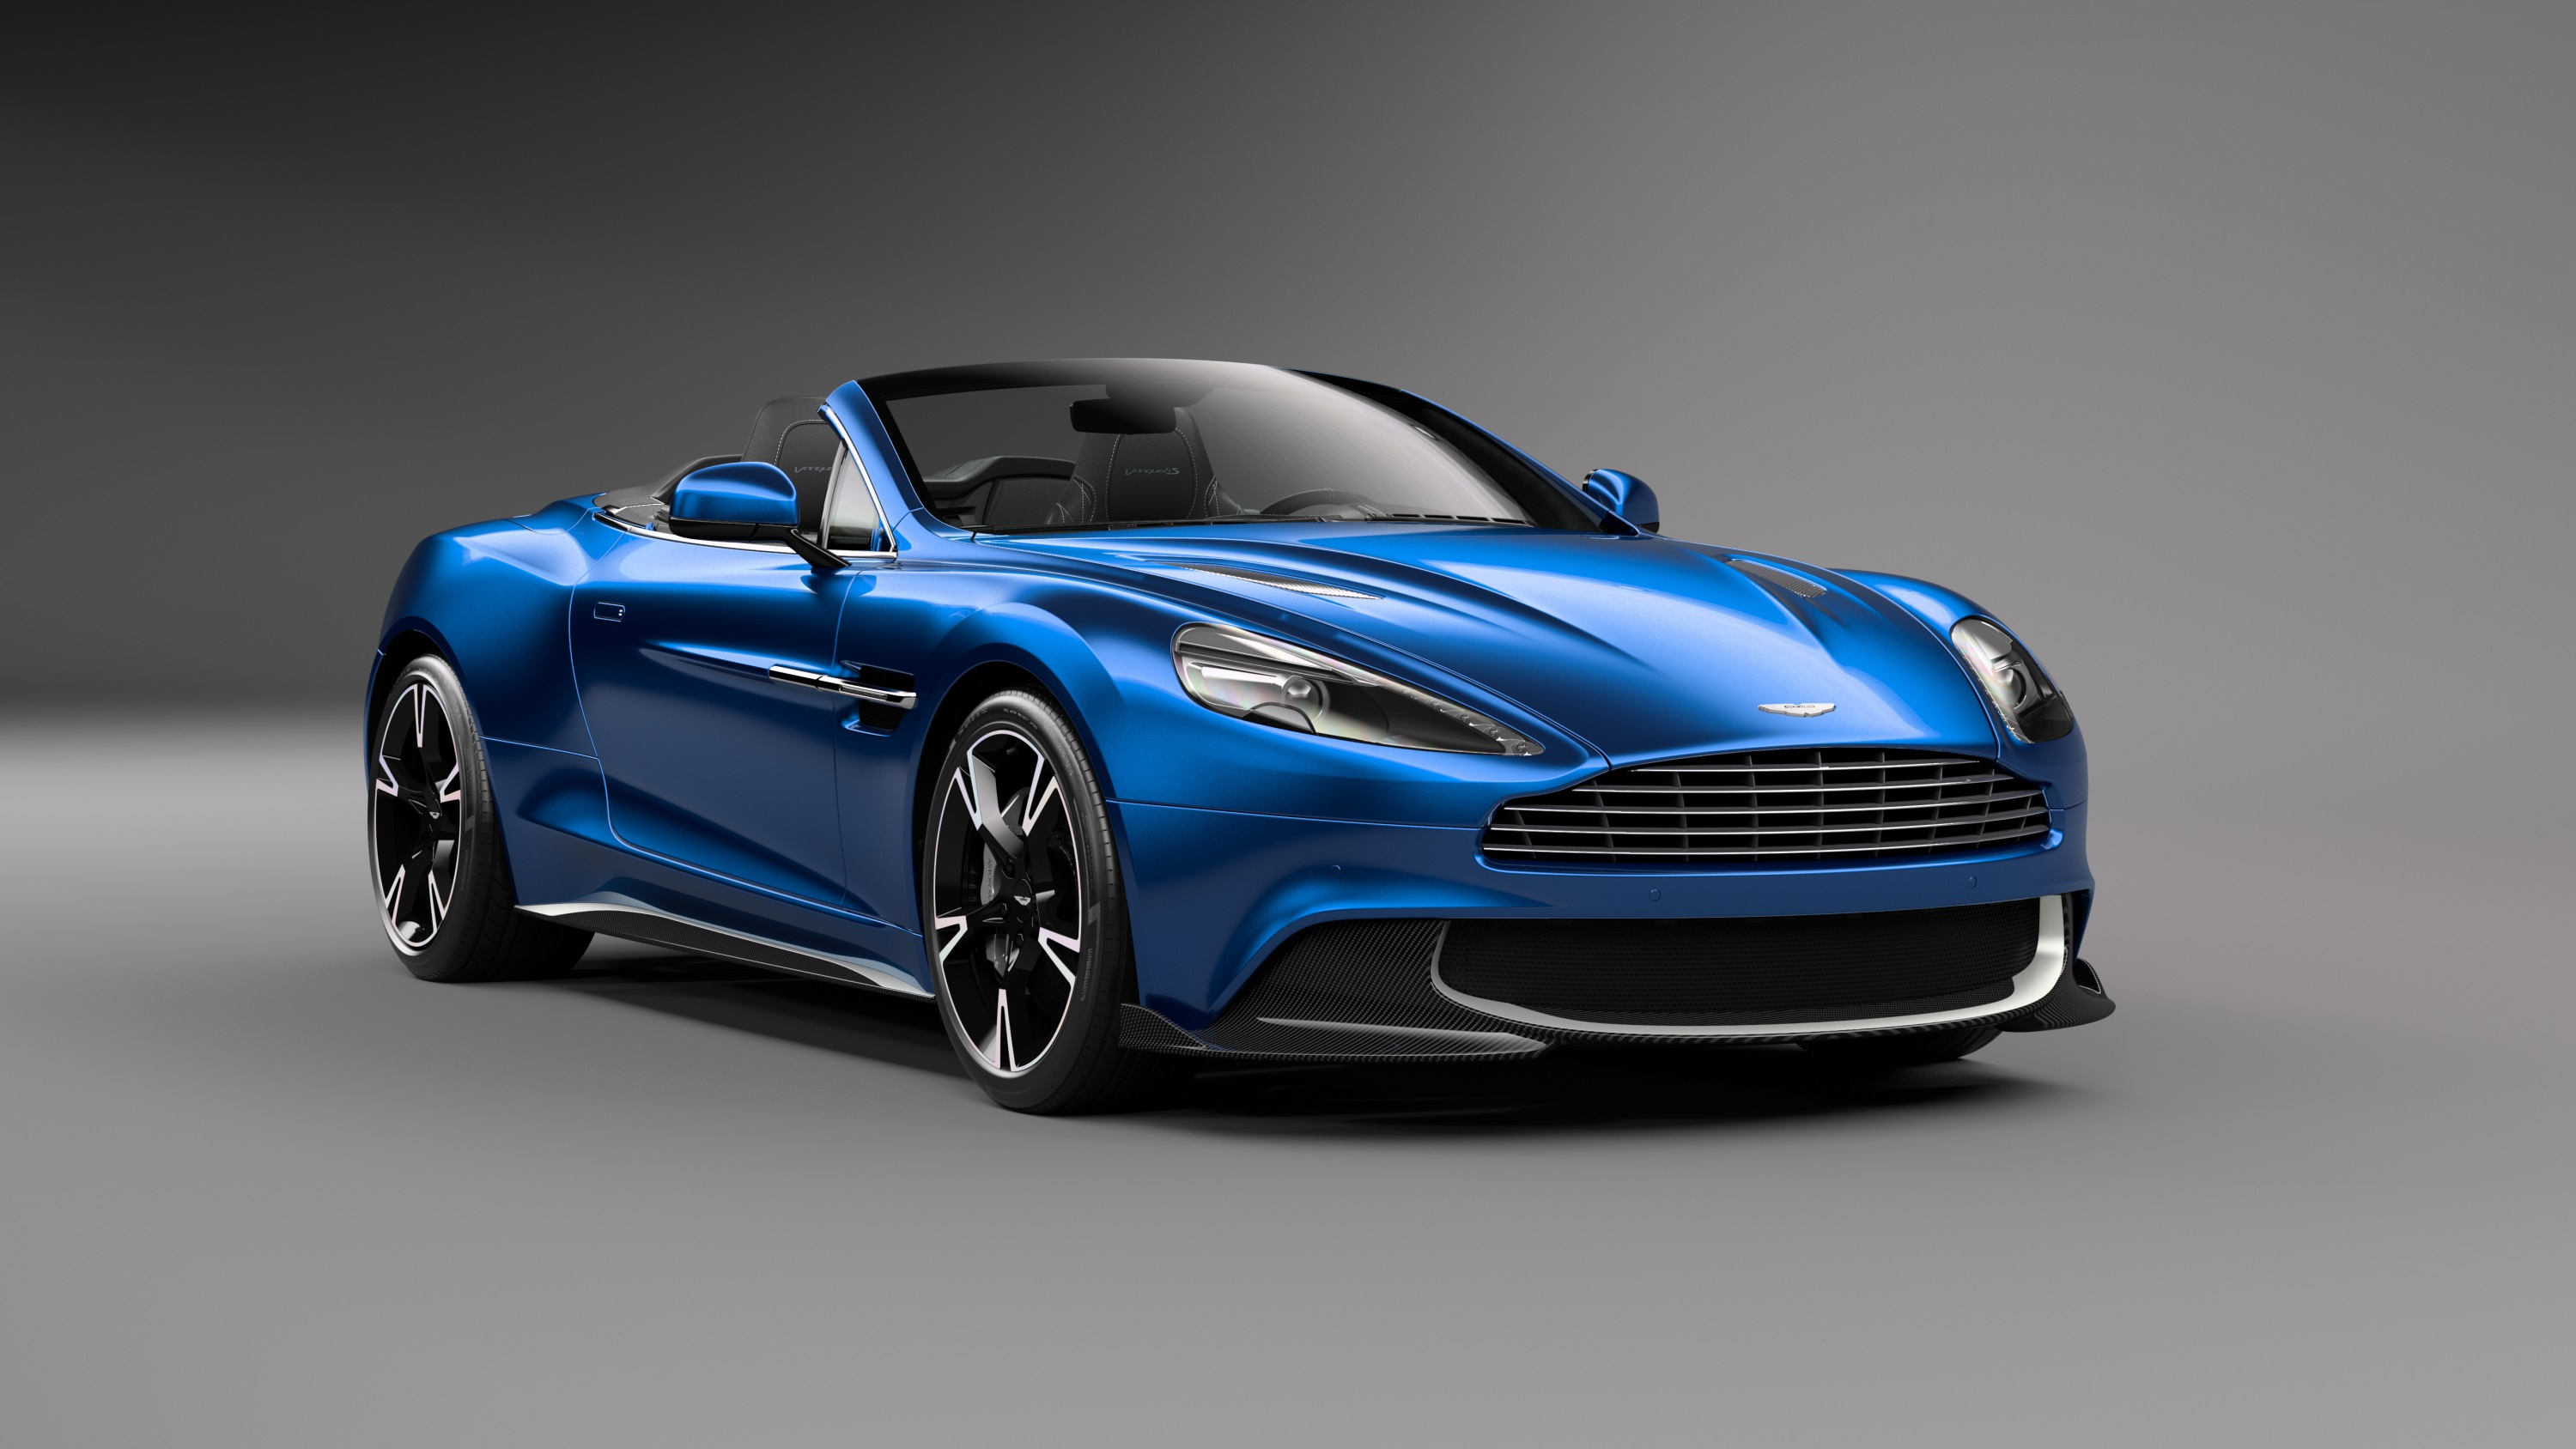 2018 Aston Martin Vanquish S Volante Wallpaper HD Car Wallpapers 3000x1688